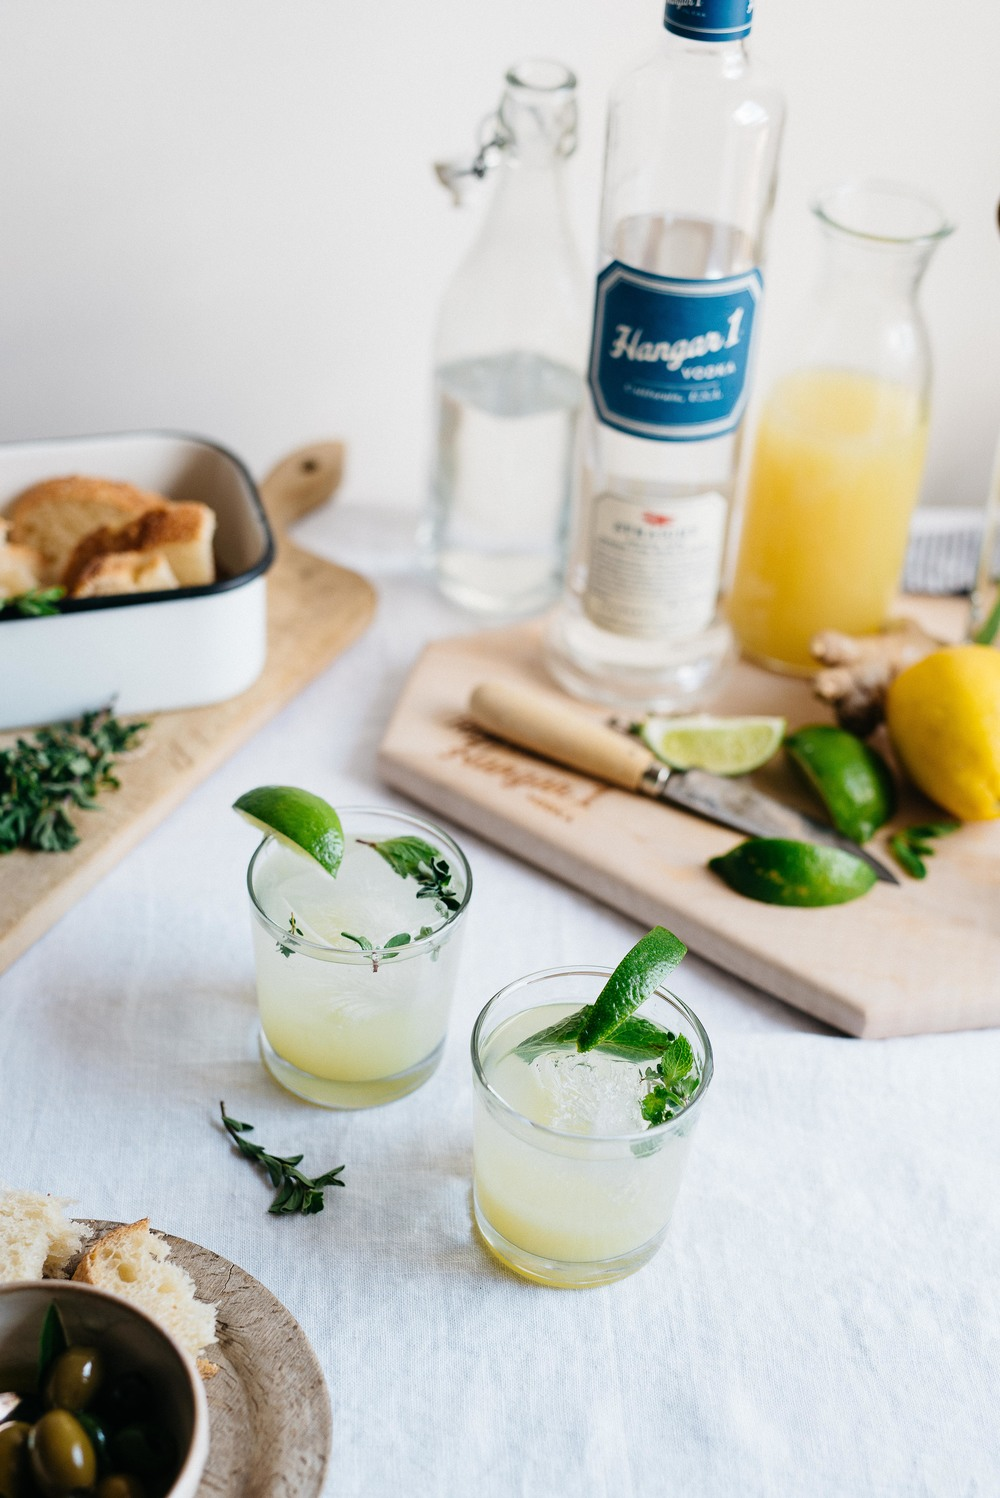 @Hangar1Vodka gingerade w/ spring herbs | dolly and oatmeal #FreshPickedVodka